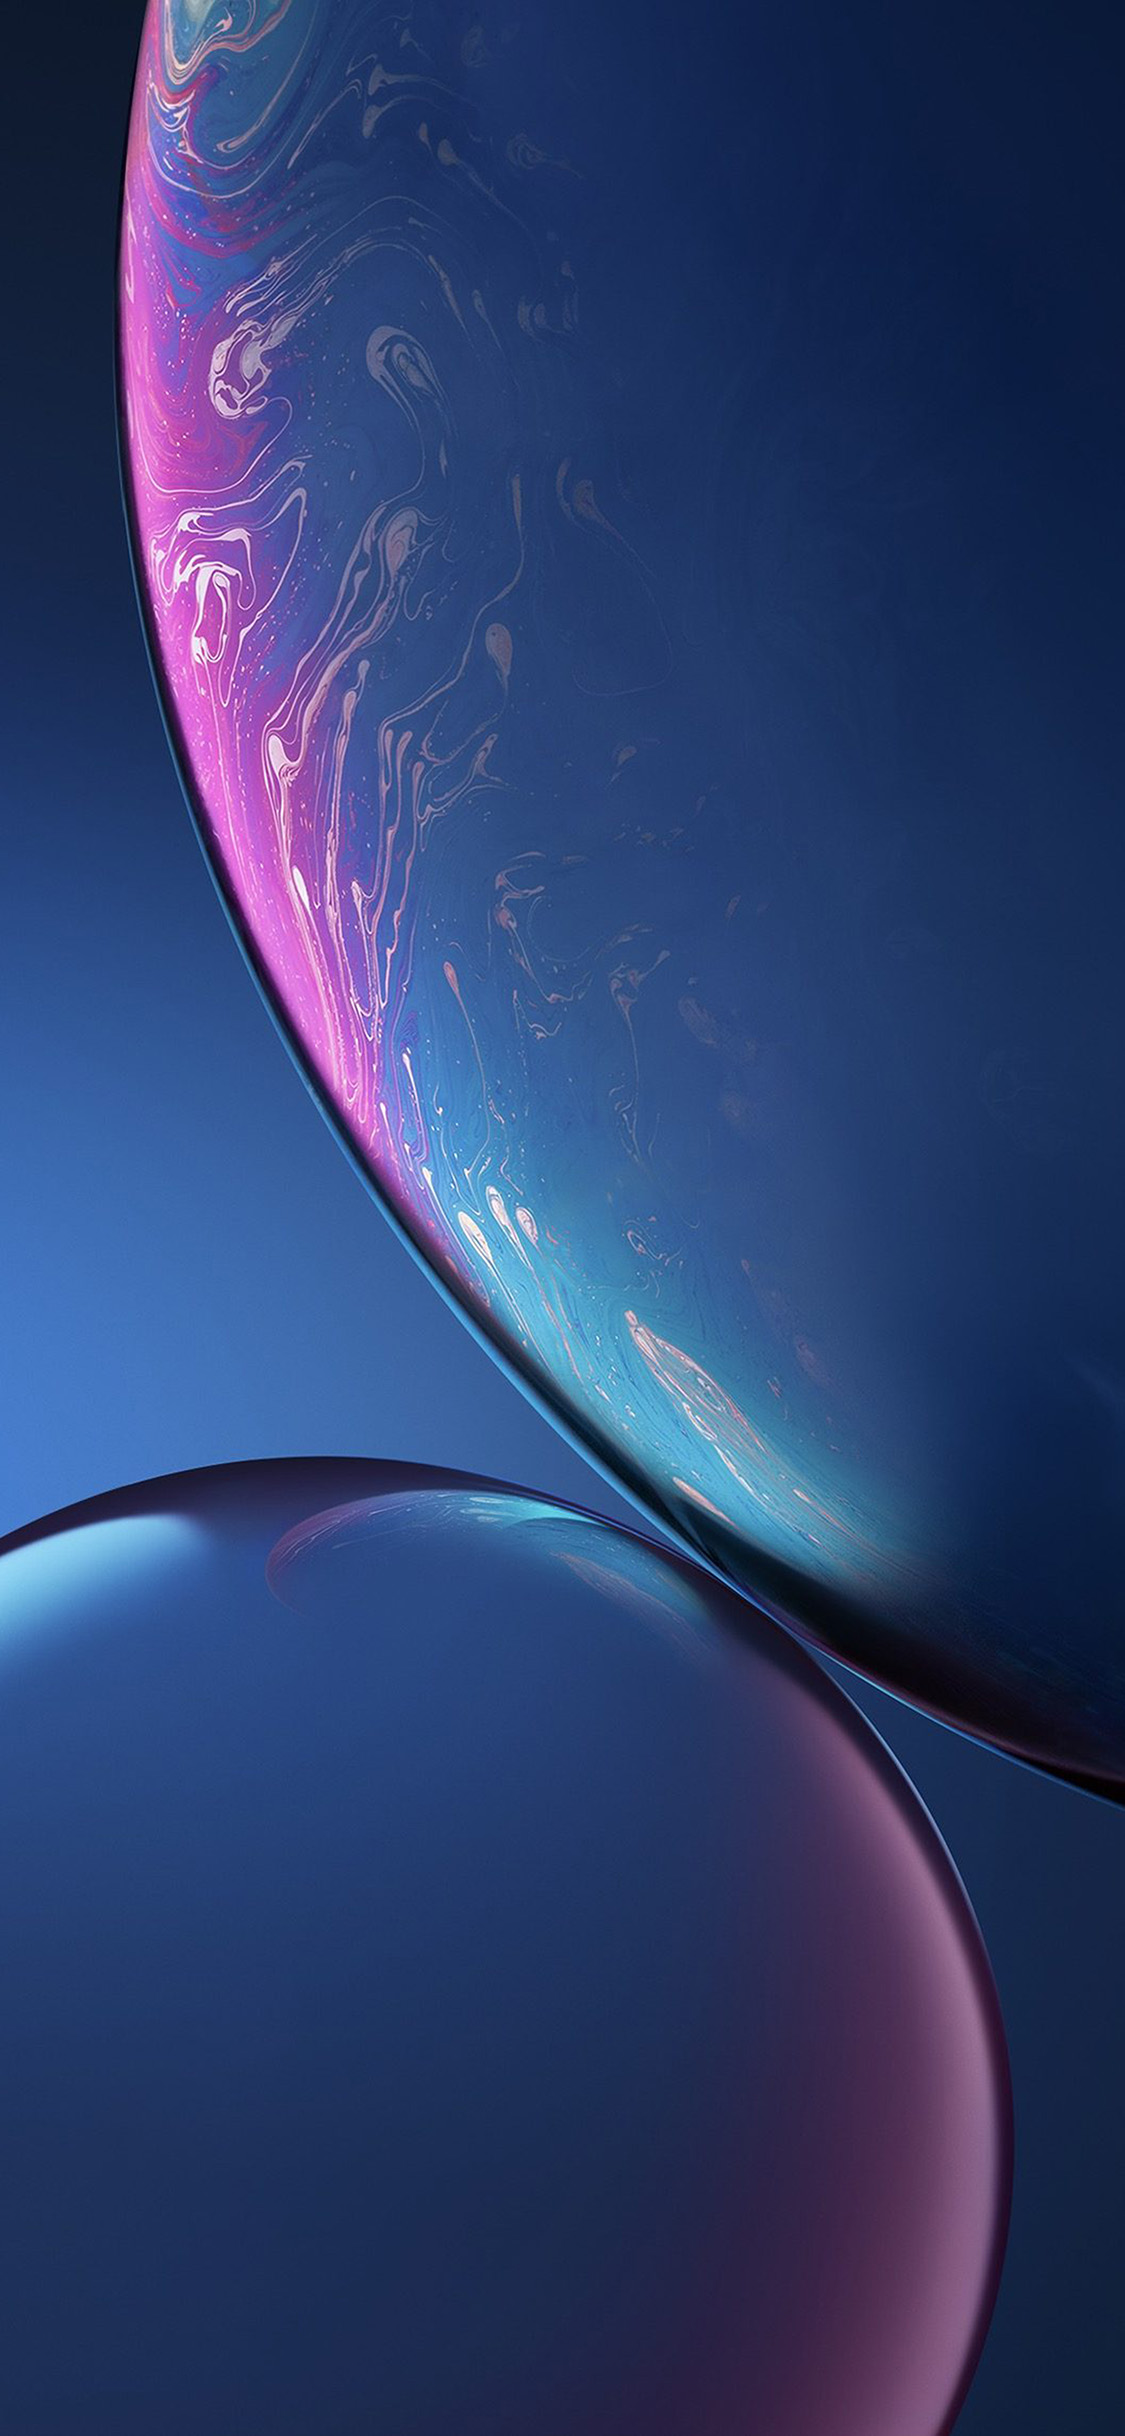 iPhonexpapers.com-Apple-iPhone-wallpaper-bg33-iphonexs-max-apple-official-art-blue